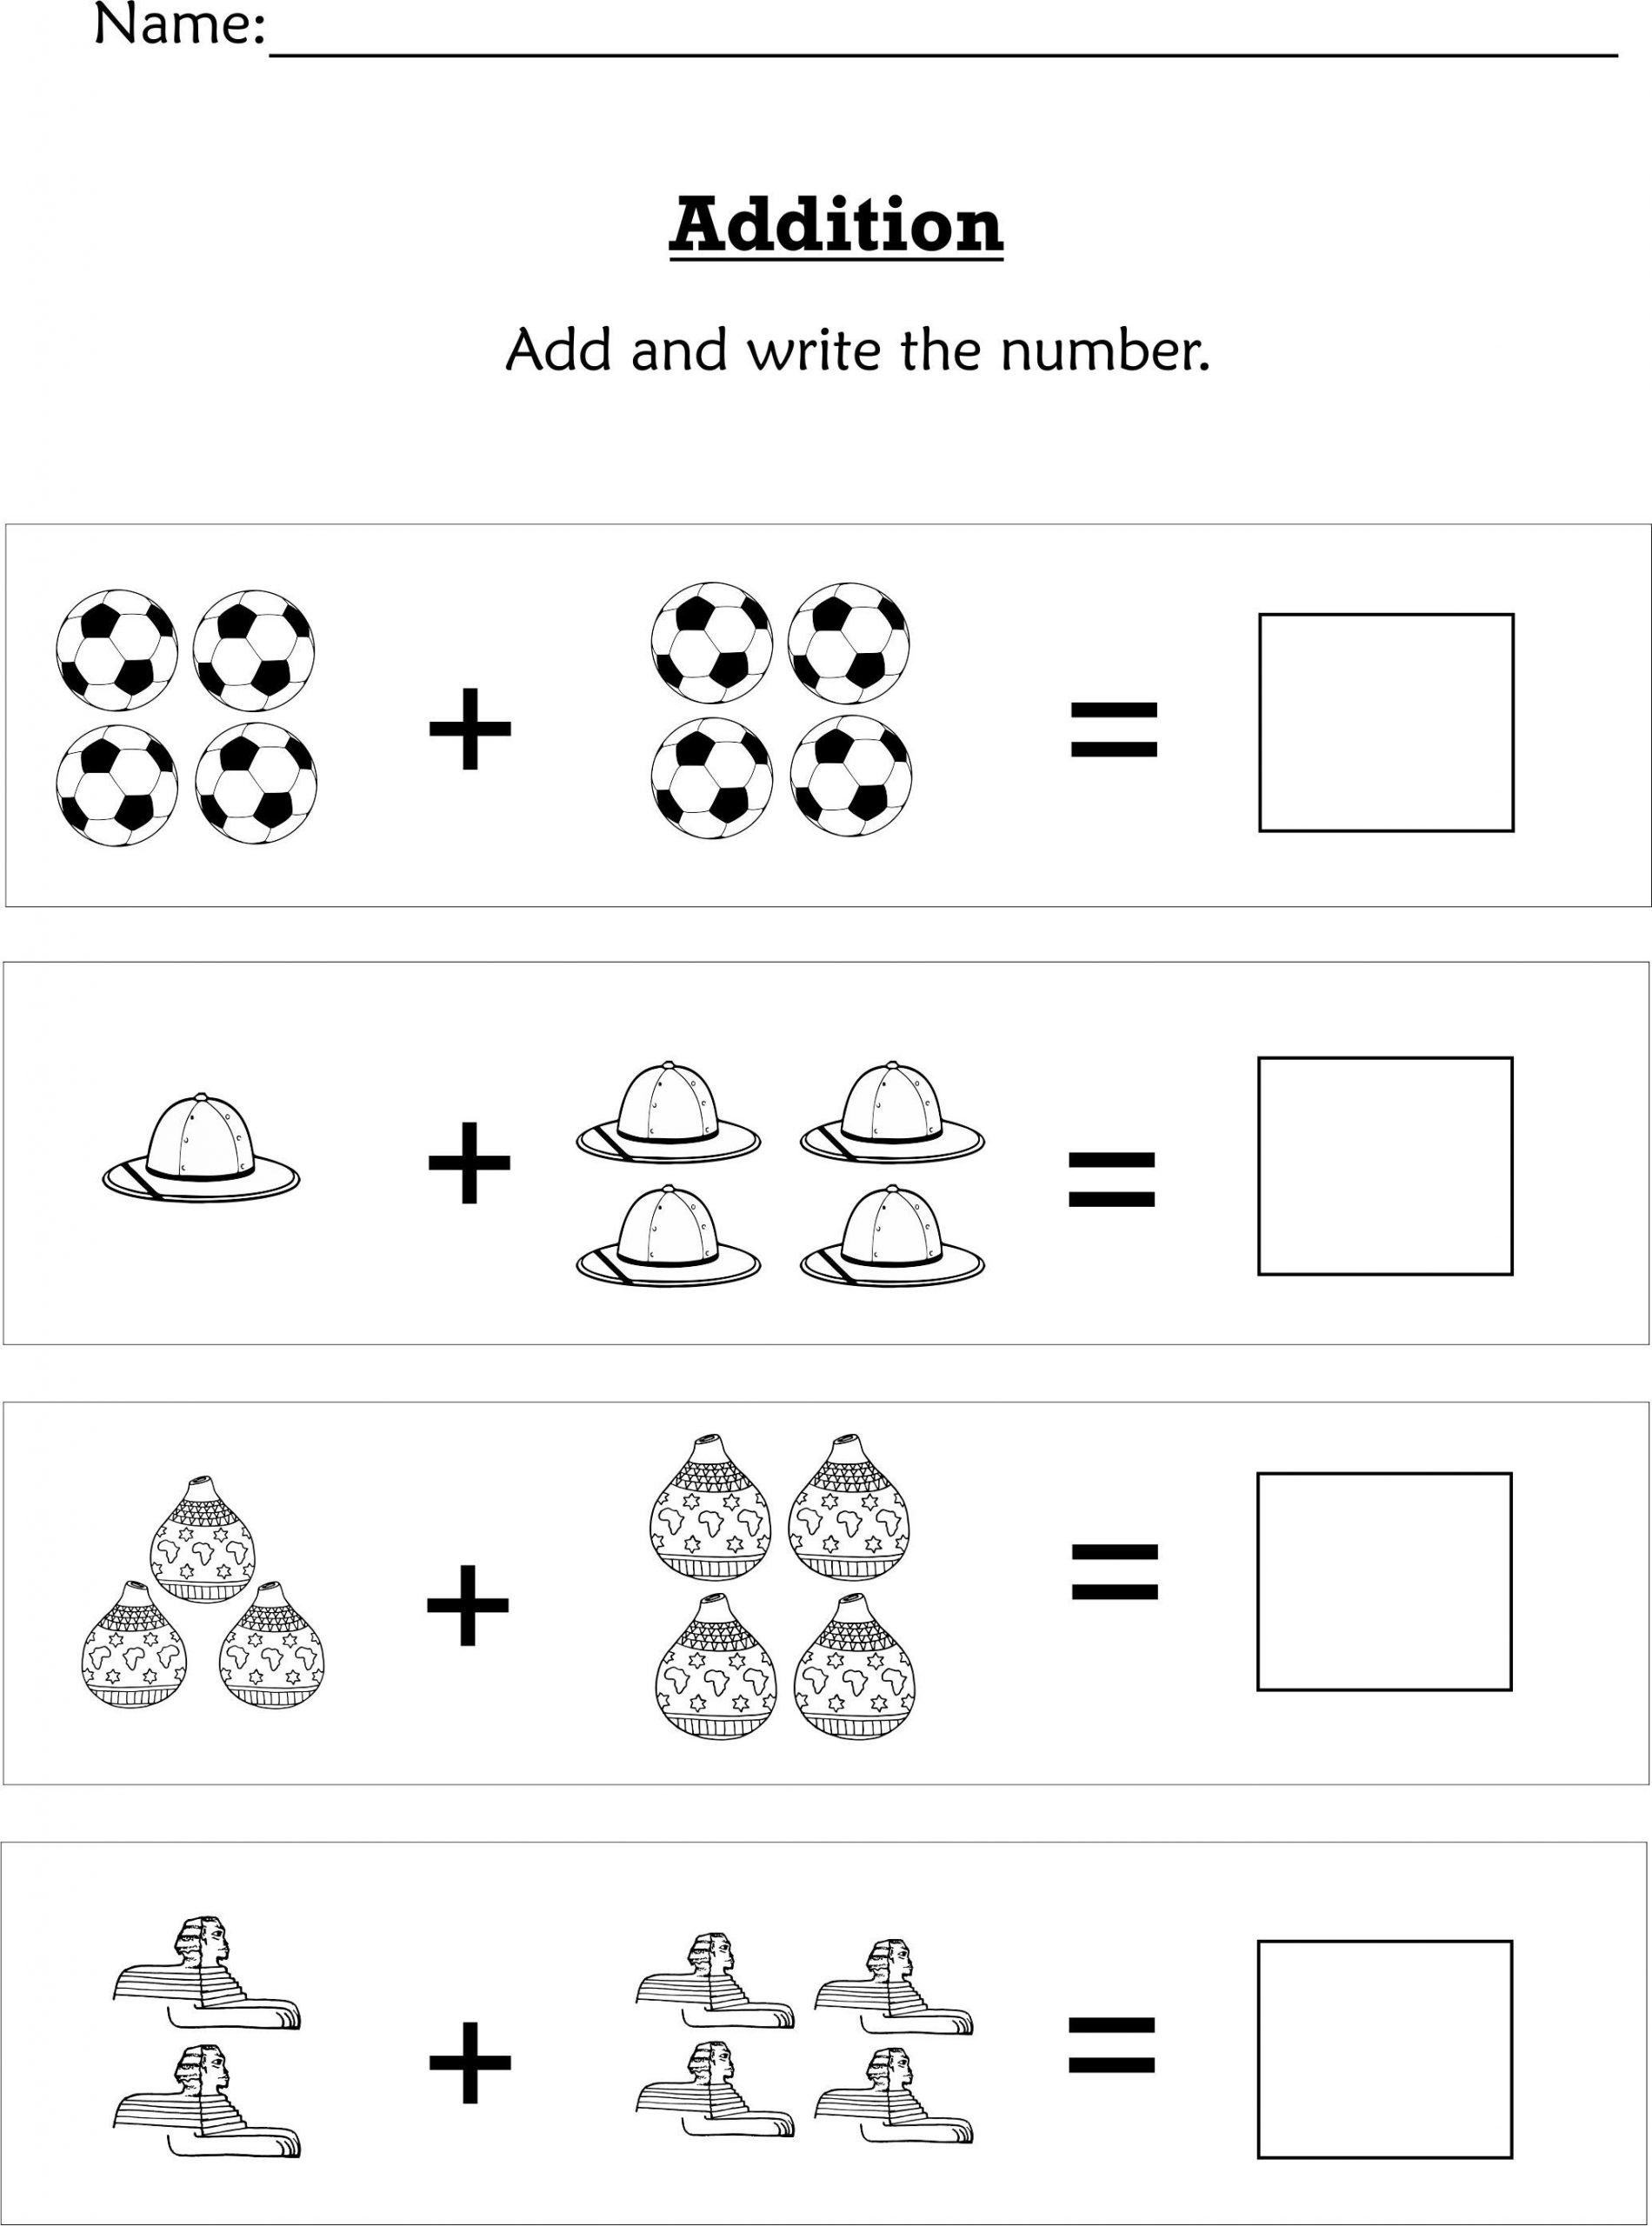 Preschool Addition Worksheets Printable Math Worksheet 44 Stunning Printable Pre K Math Worksheets